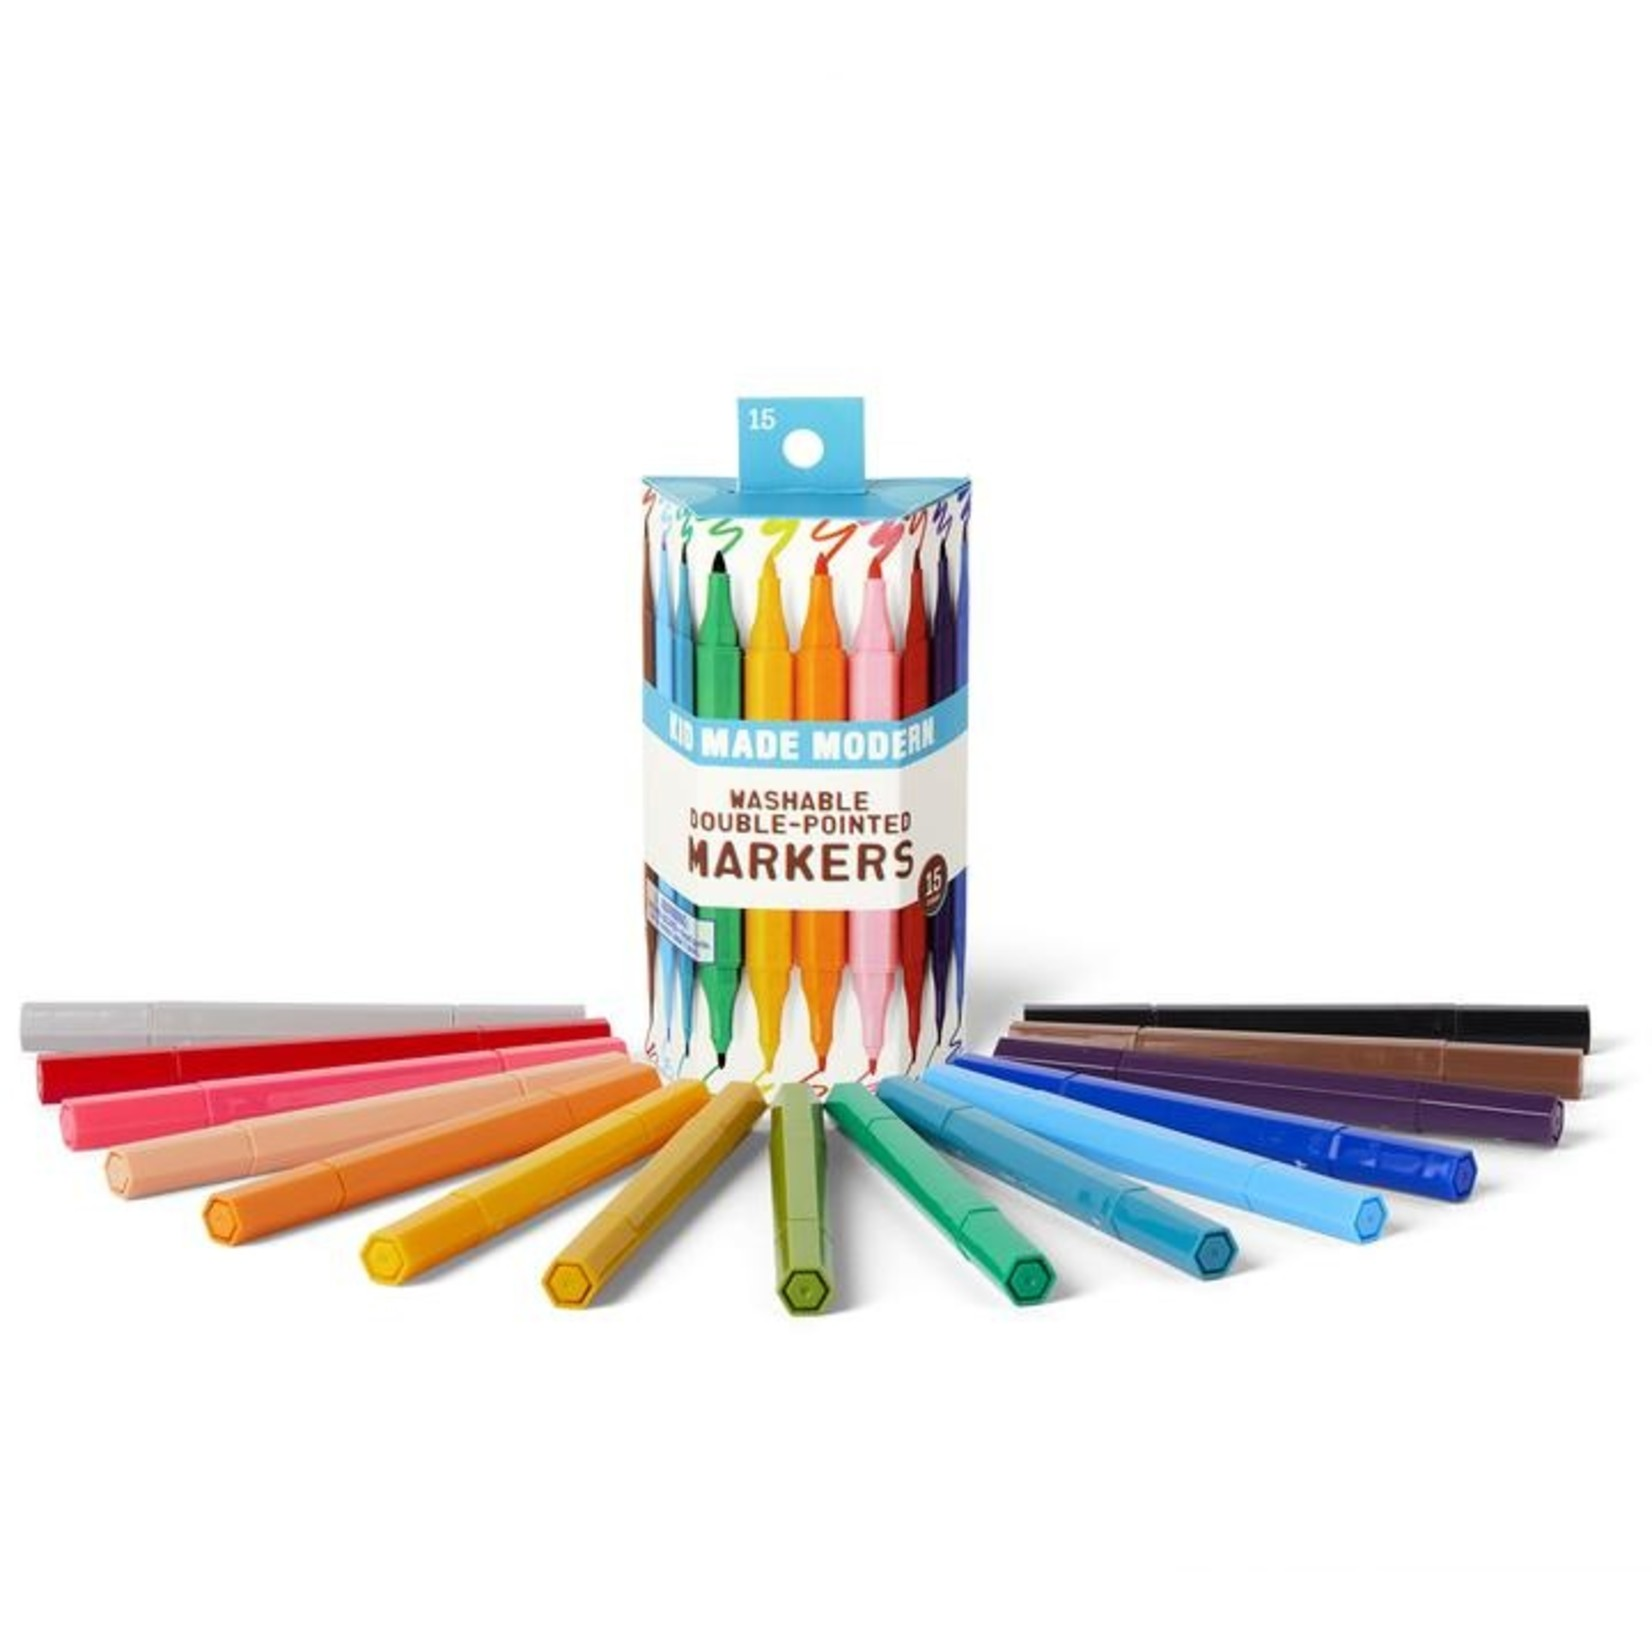 Kid Made Modern Washable Double Pointed Markers - 15 count